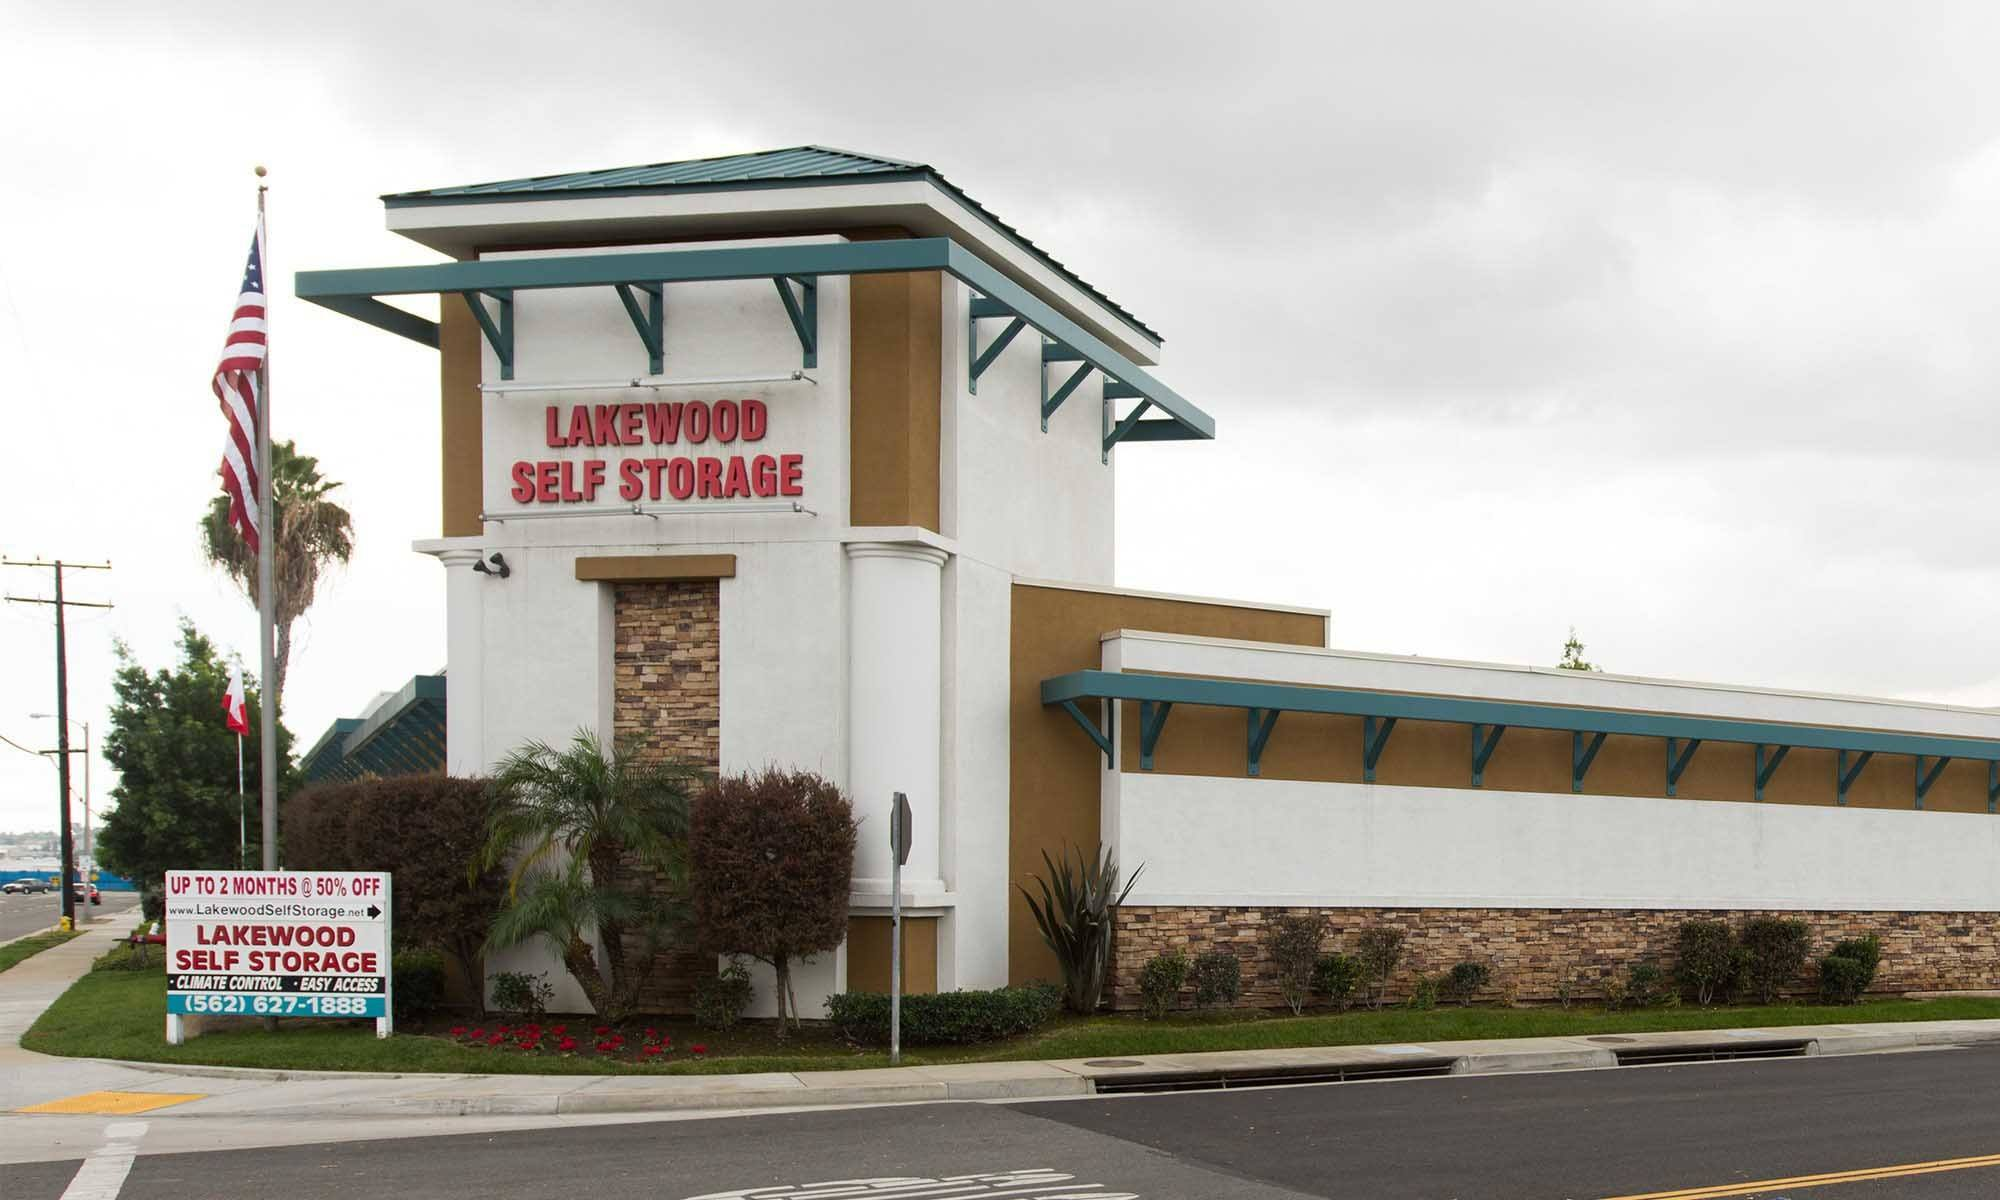 Lakewood Self Storage - Home of the 1st Year Price Guarantee!